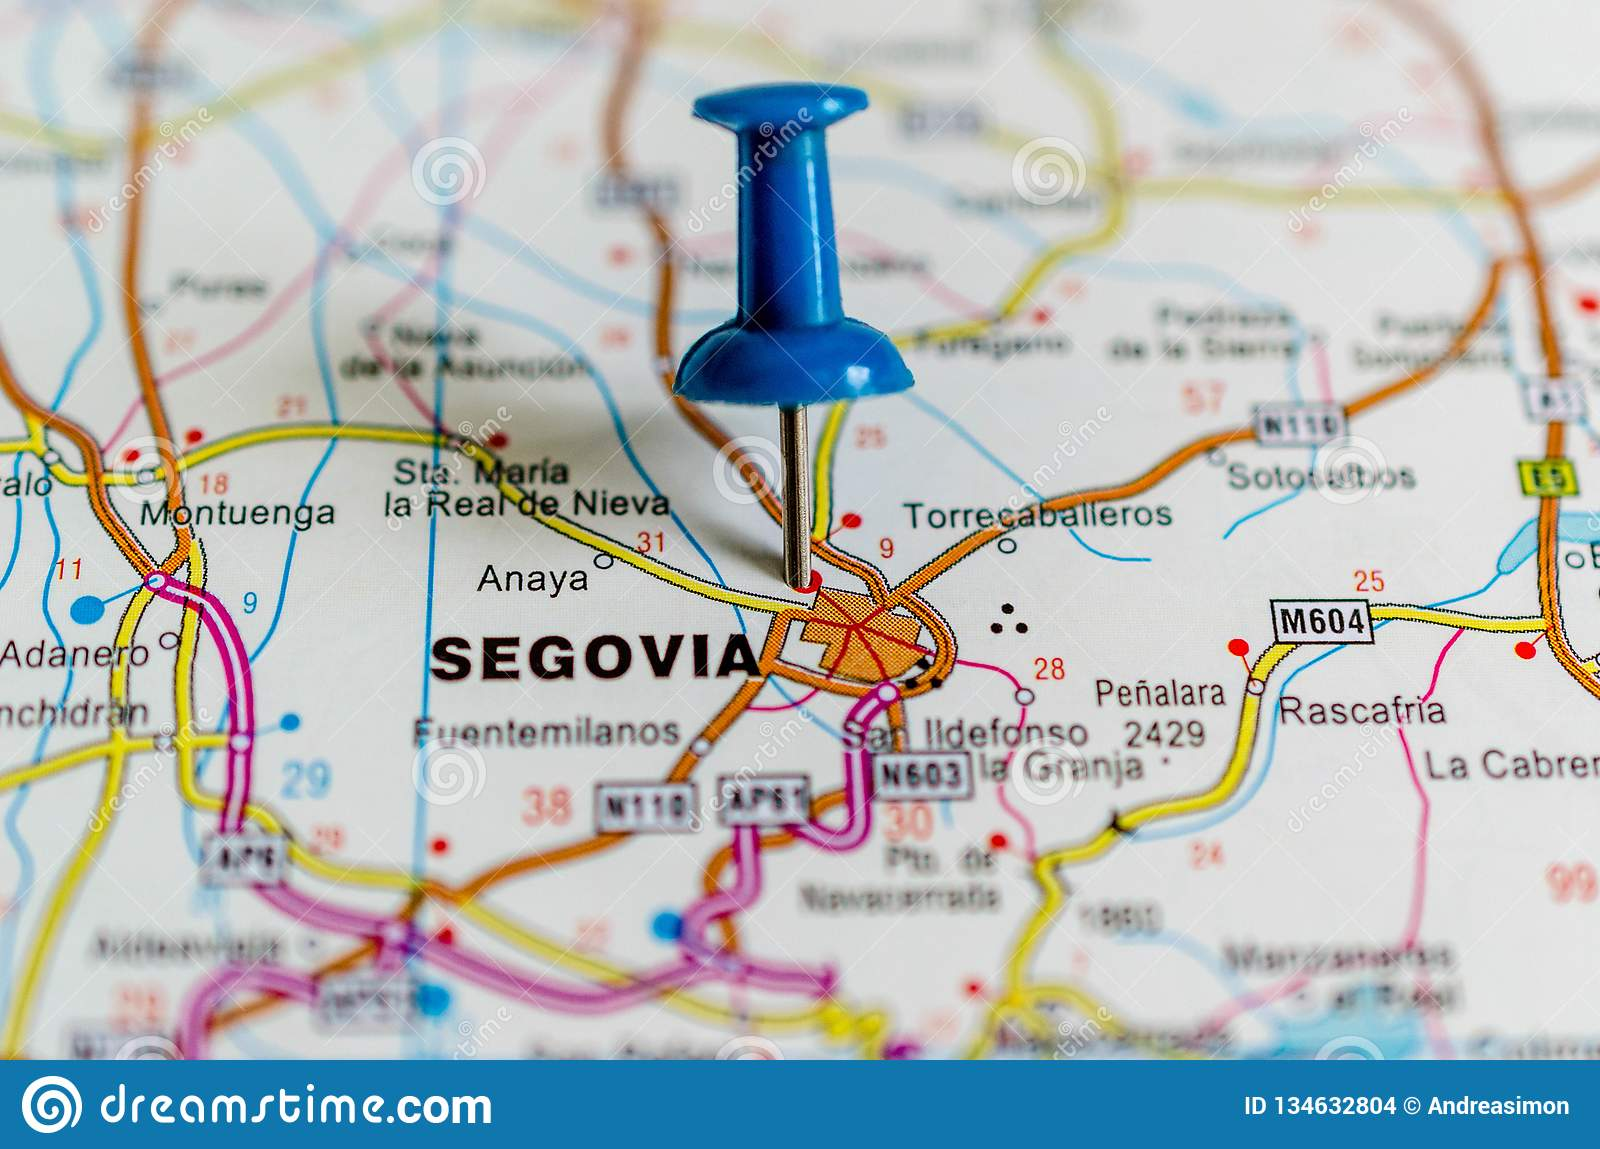 Map Of Central Spain.Segovia On Map Stock Photo Image Of Historic Capital 134632804